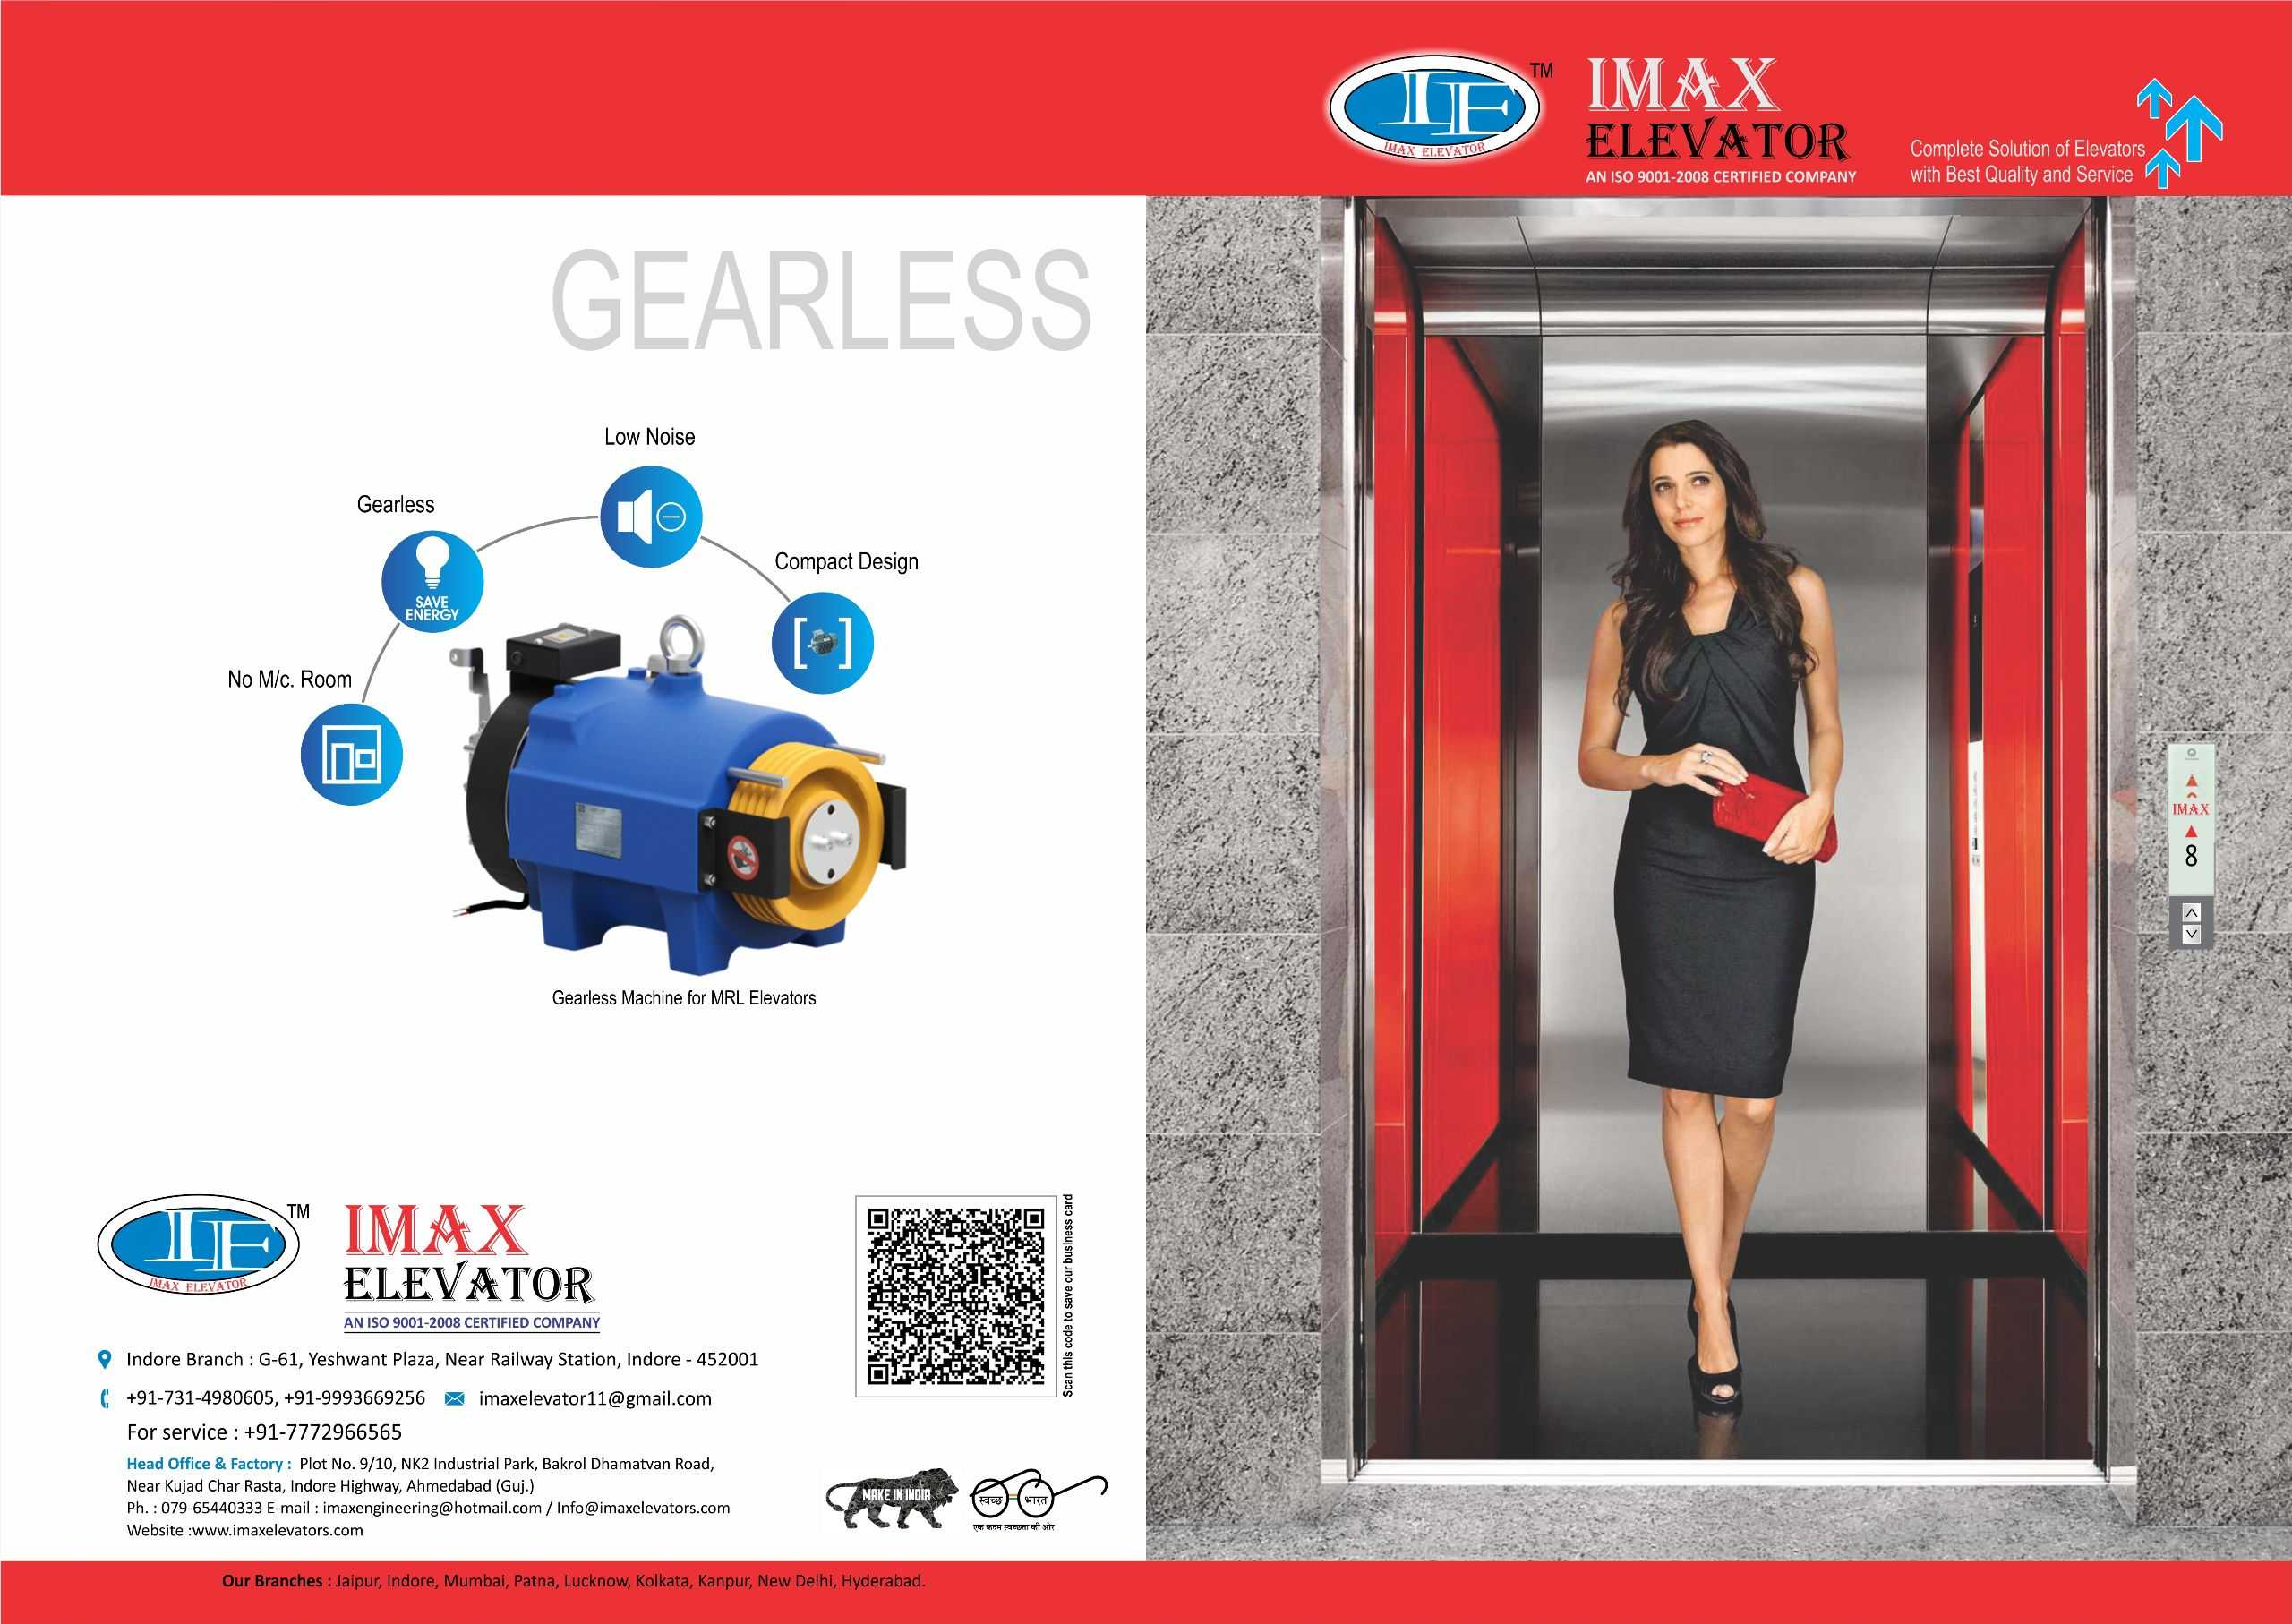 Imax Elevator in Railway Station Road, Indore-452001